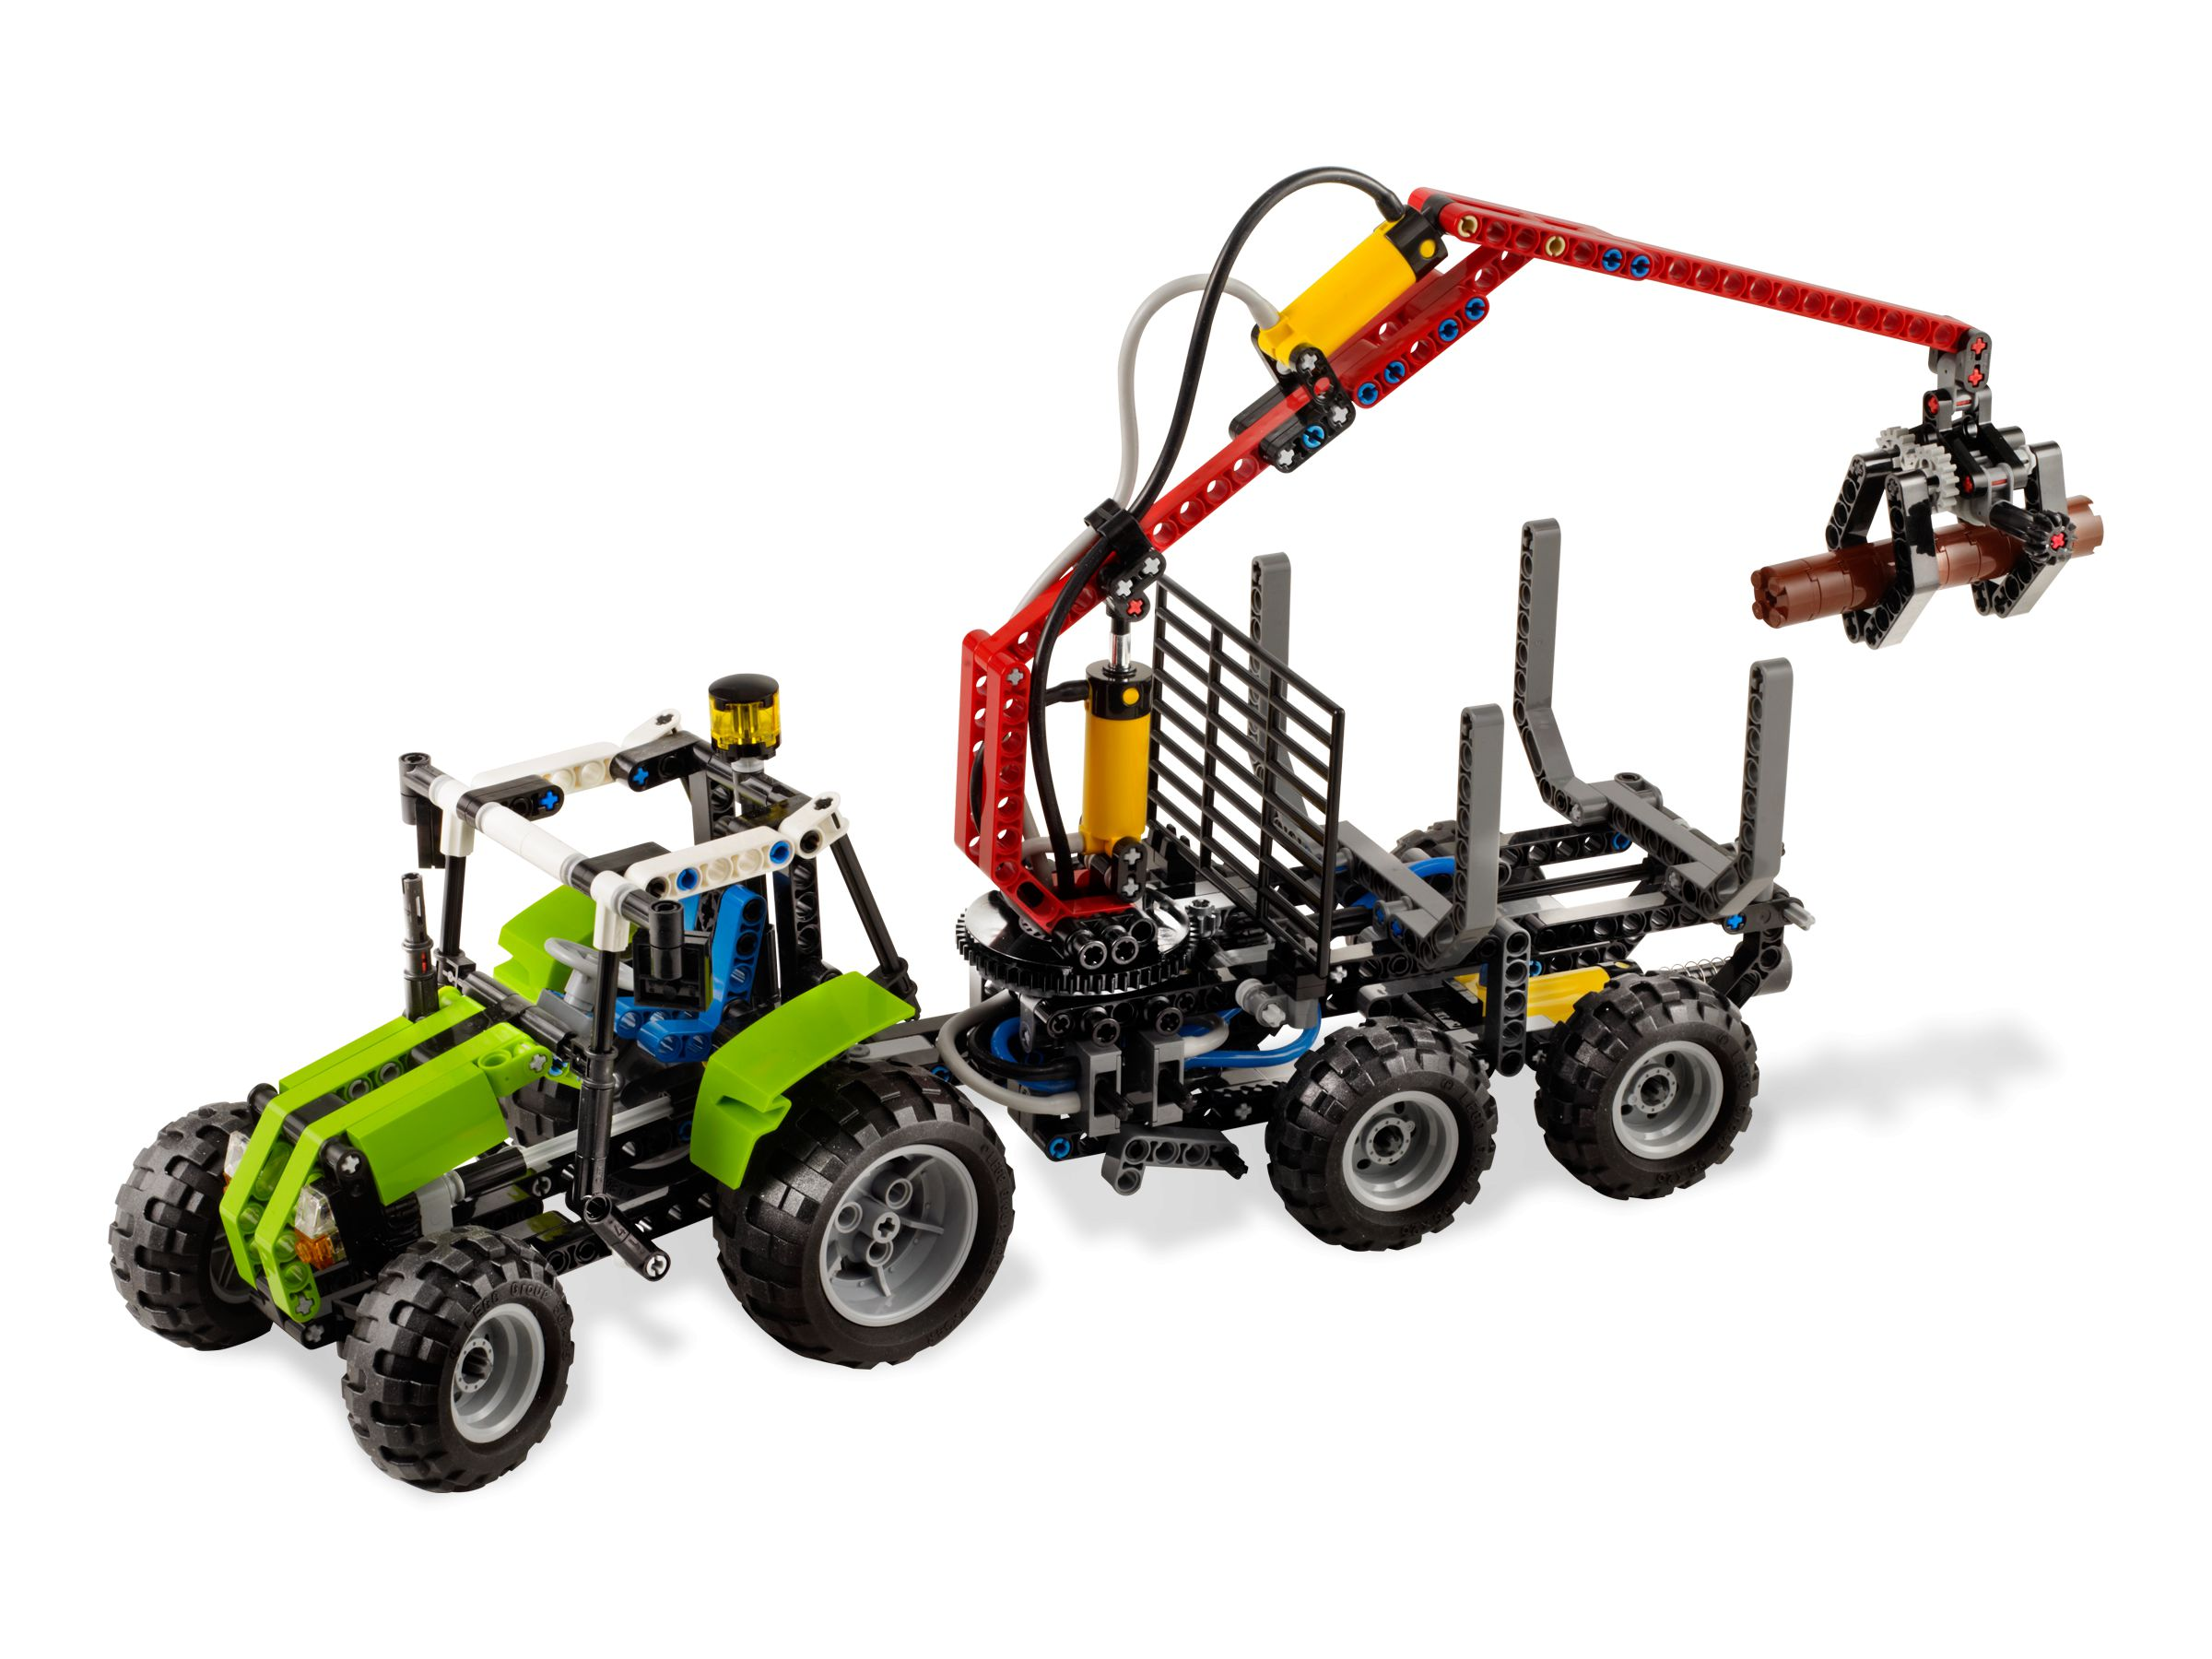 LEGO Technic 8049 Tractor with Log Loader LEGO_8049.jpg